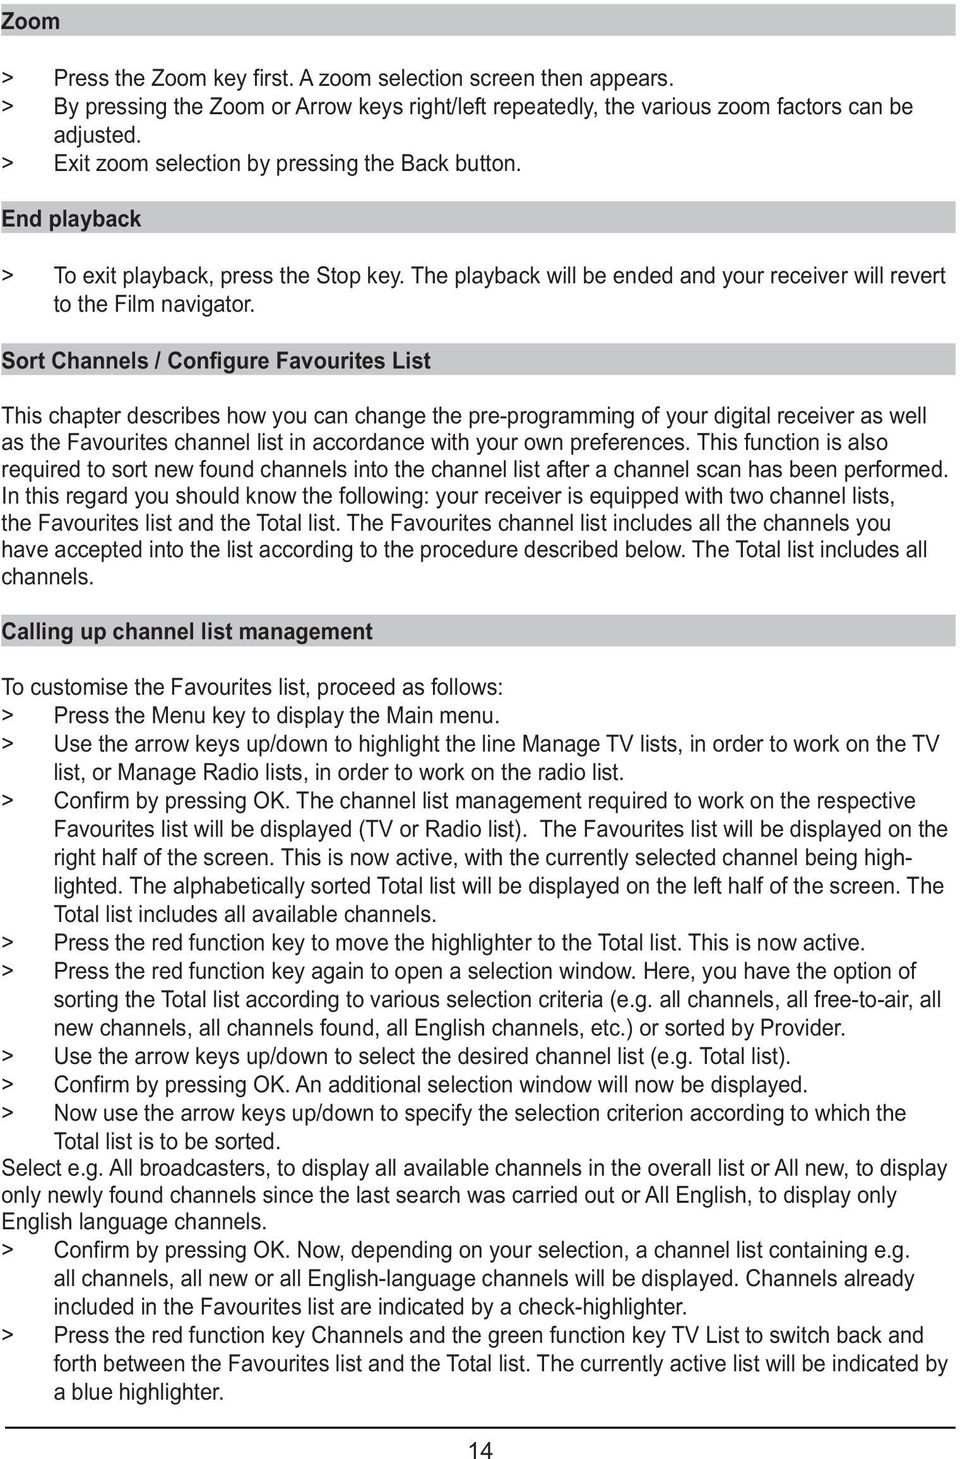 Sort Channels / Configure Favourites List This chapter describes how you can change the pre-programming of your digital receiver as well as the Favourites channel list in accordance with your own